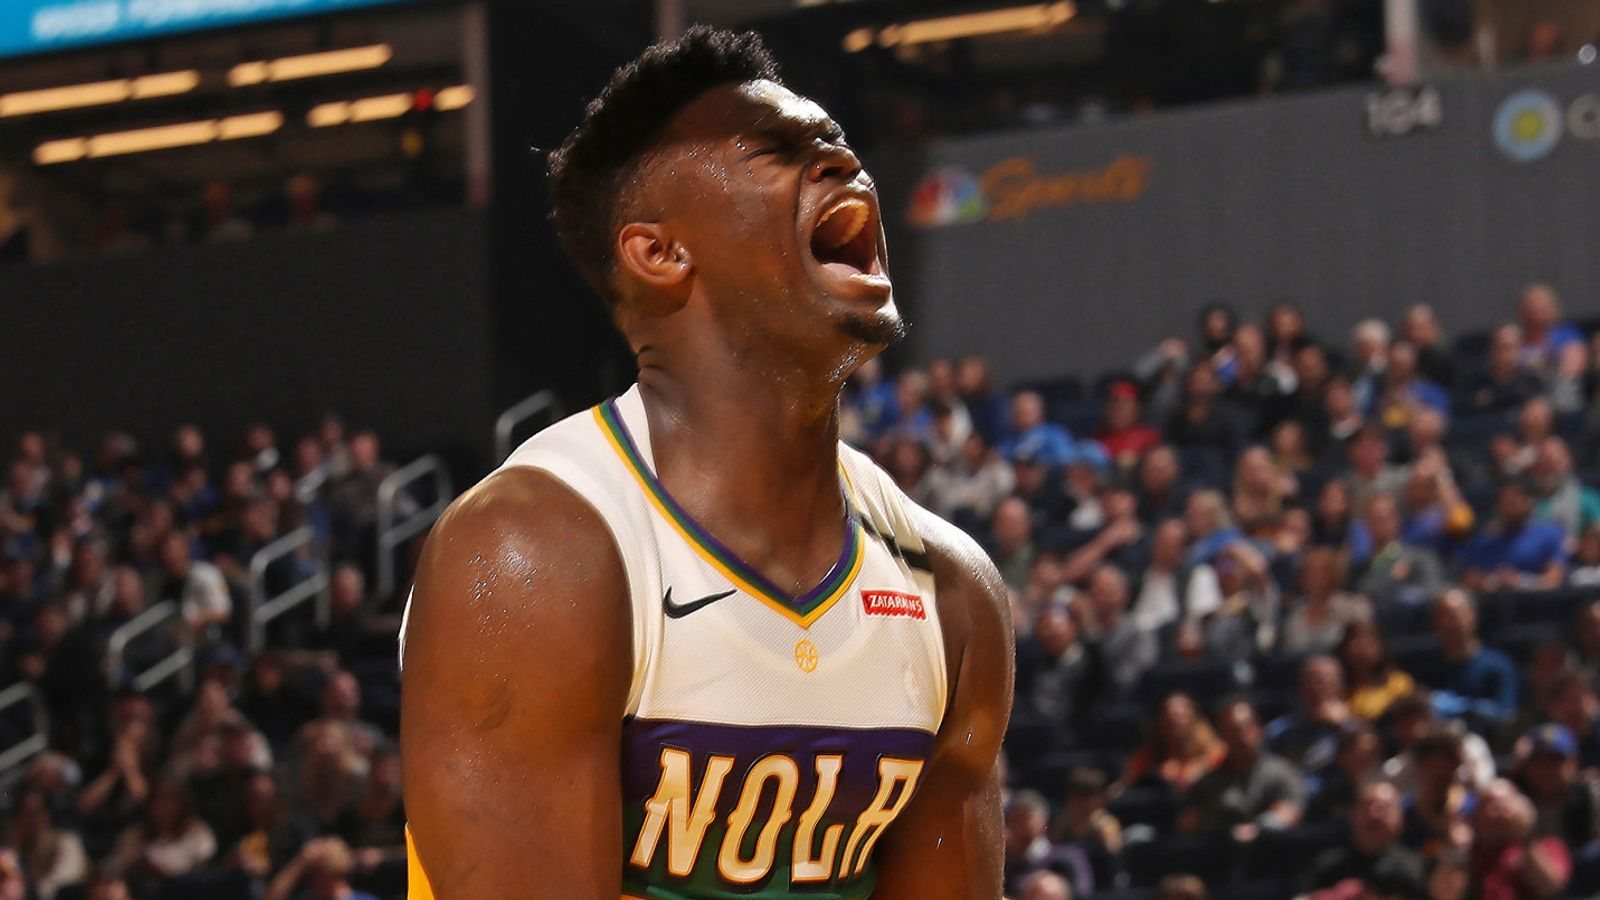 Zion Williamson amplifies Pelicans playoff surge but how high will they rise?